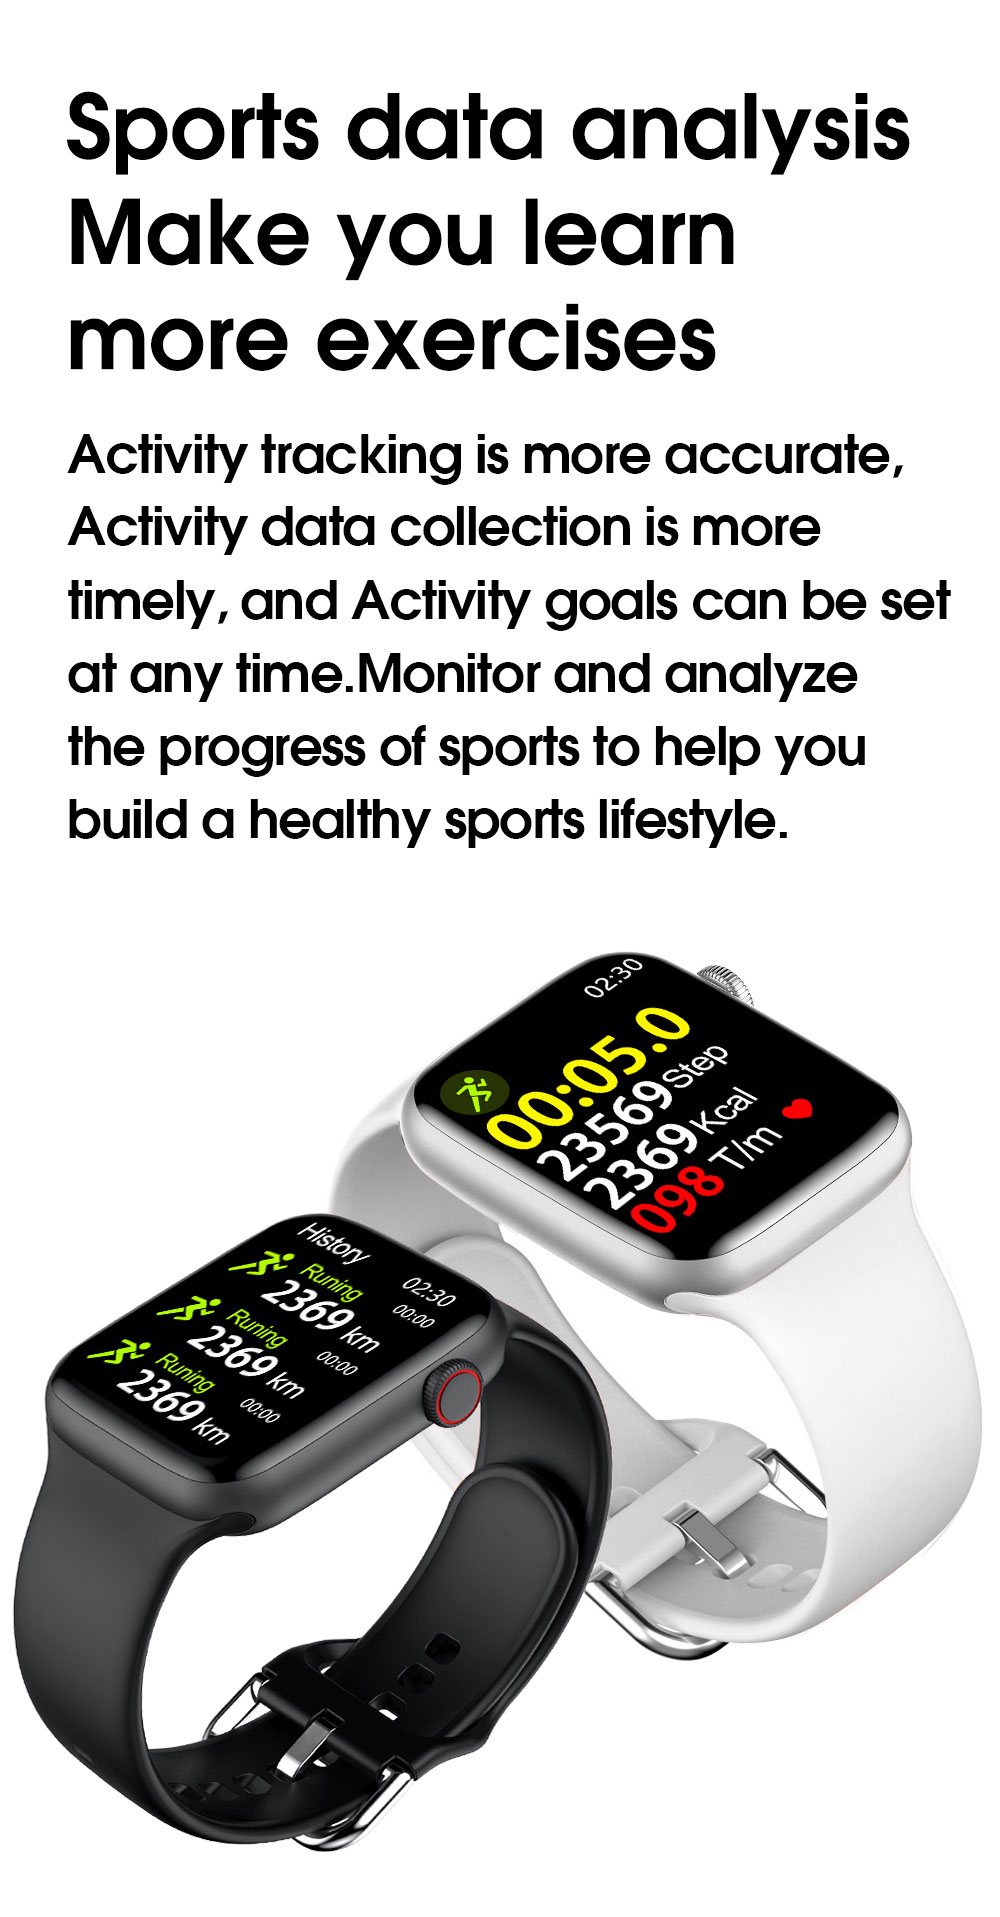 H4d711e5fc261436ea35a8fb3ef97c7ebY 2021 Original IWO W26 W46 Smart Watch Men/Women Heart Rate/Blood Pressure Monitor Clock Smartwatch For Android IOS PK HW22 HW16